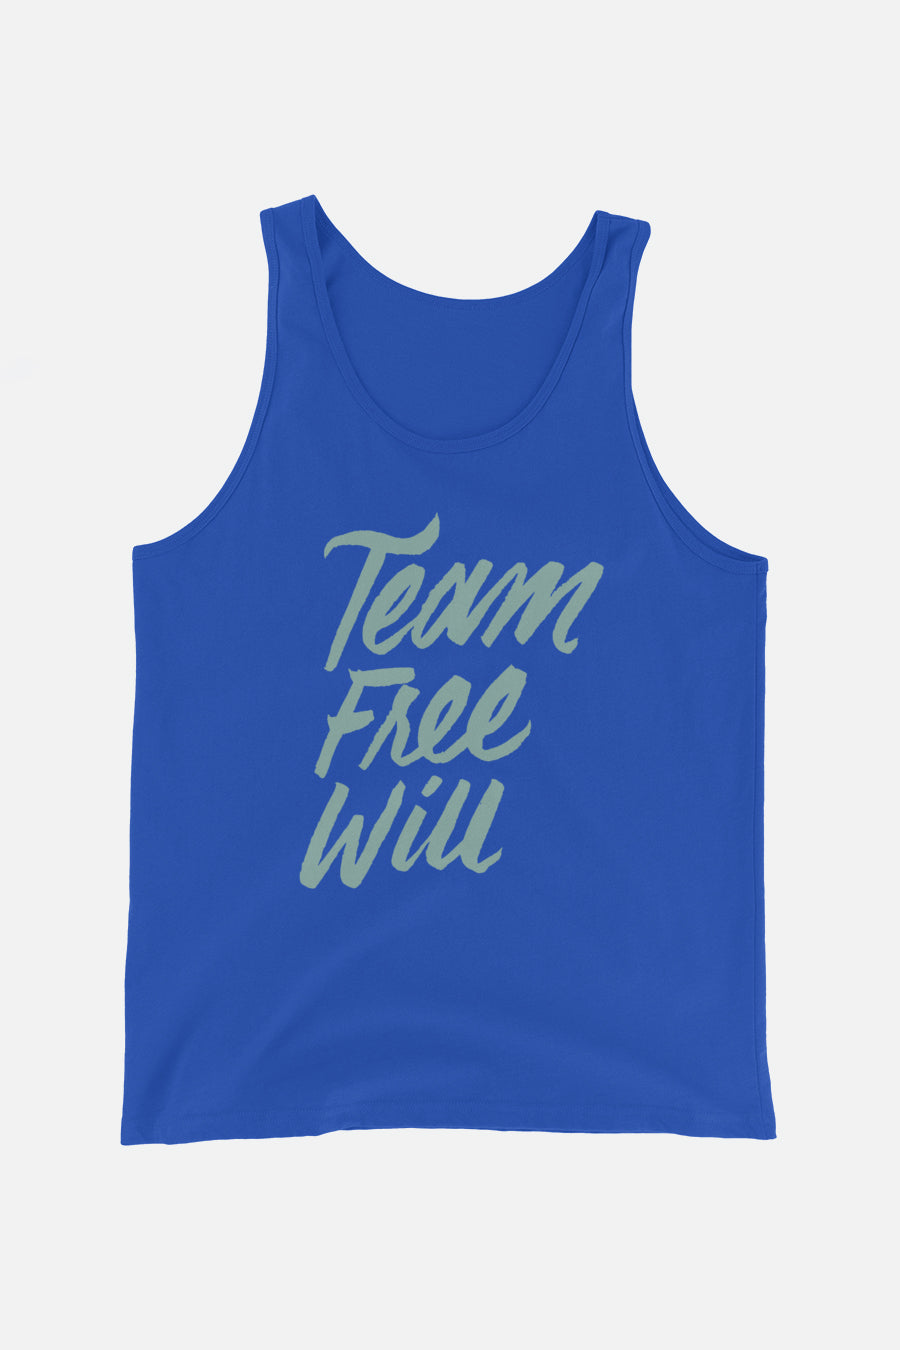 Team Free Will Unisex Tank Top